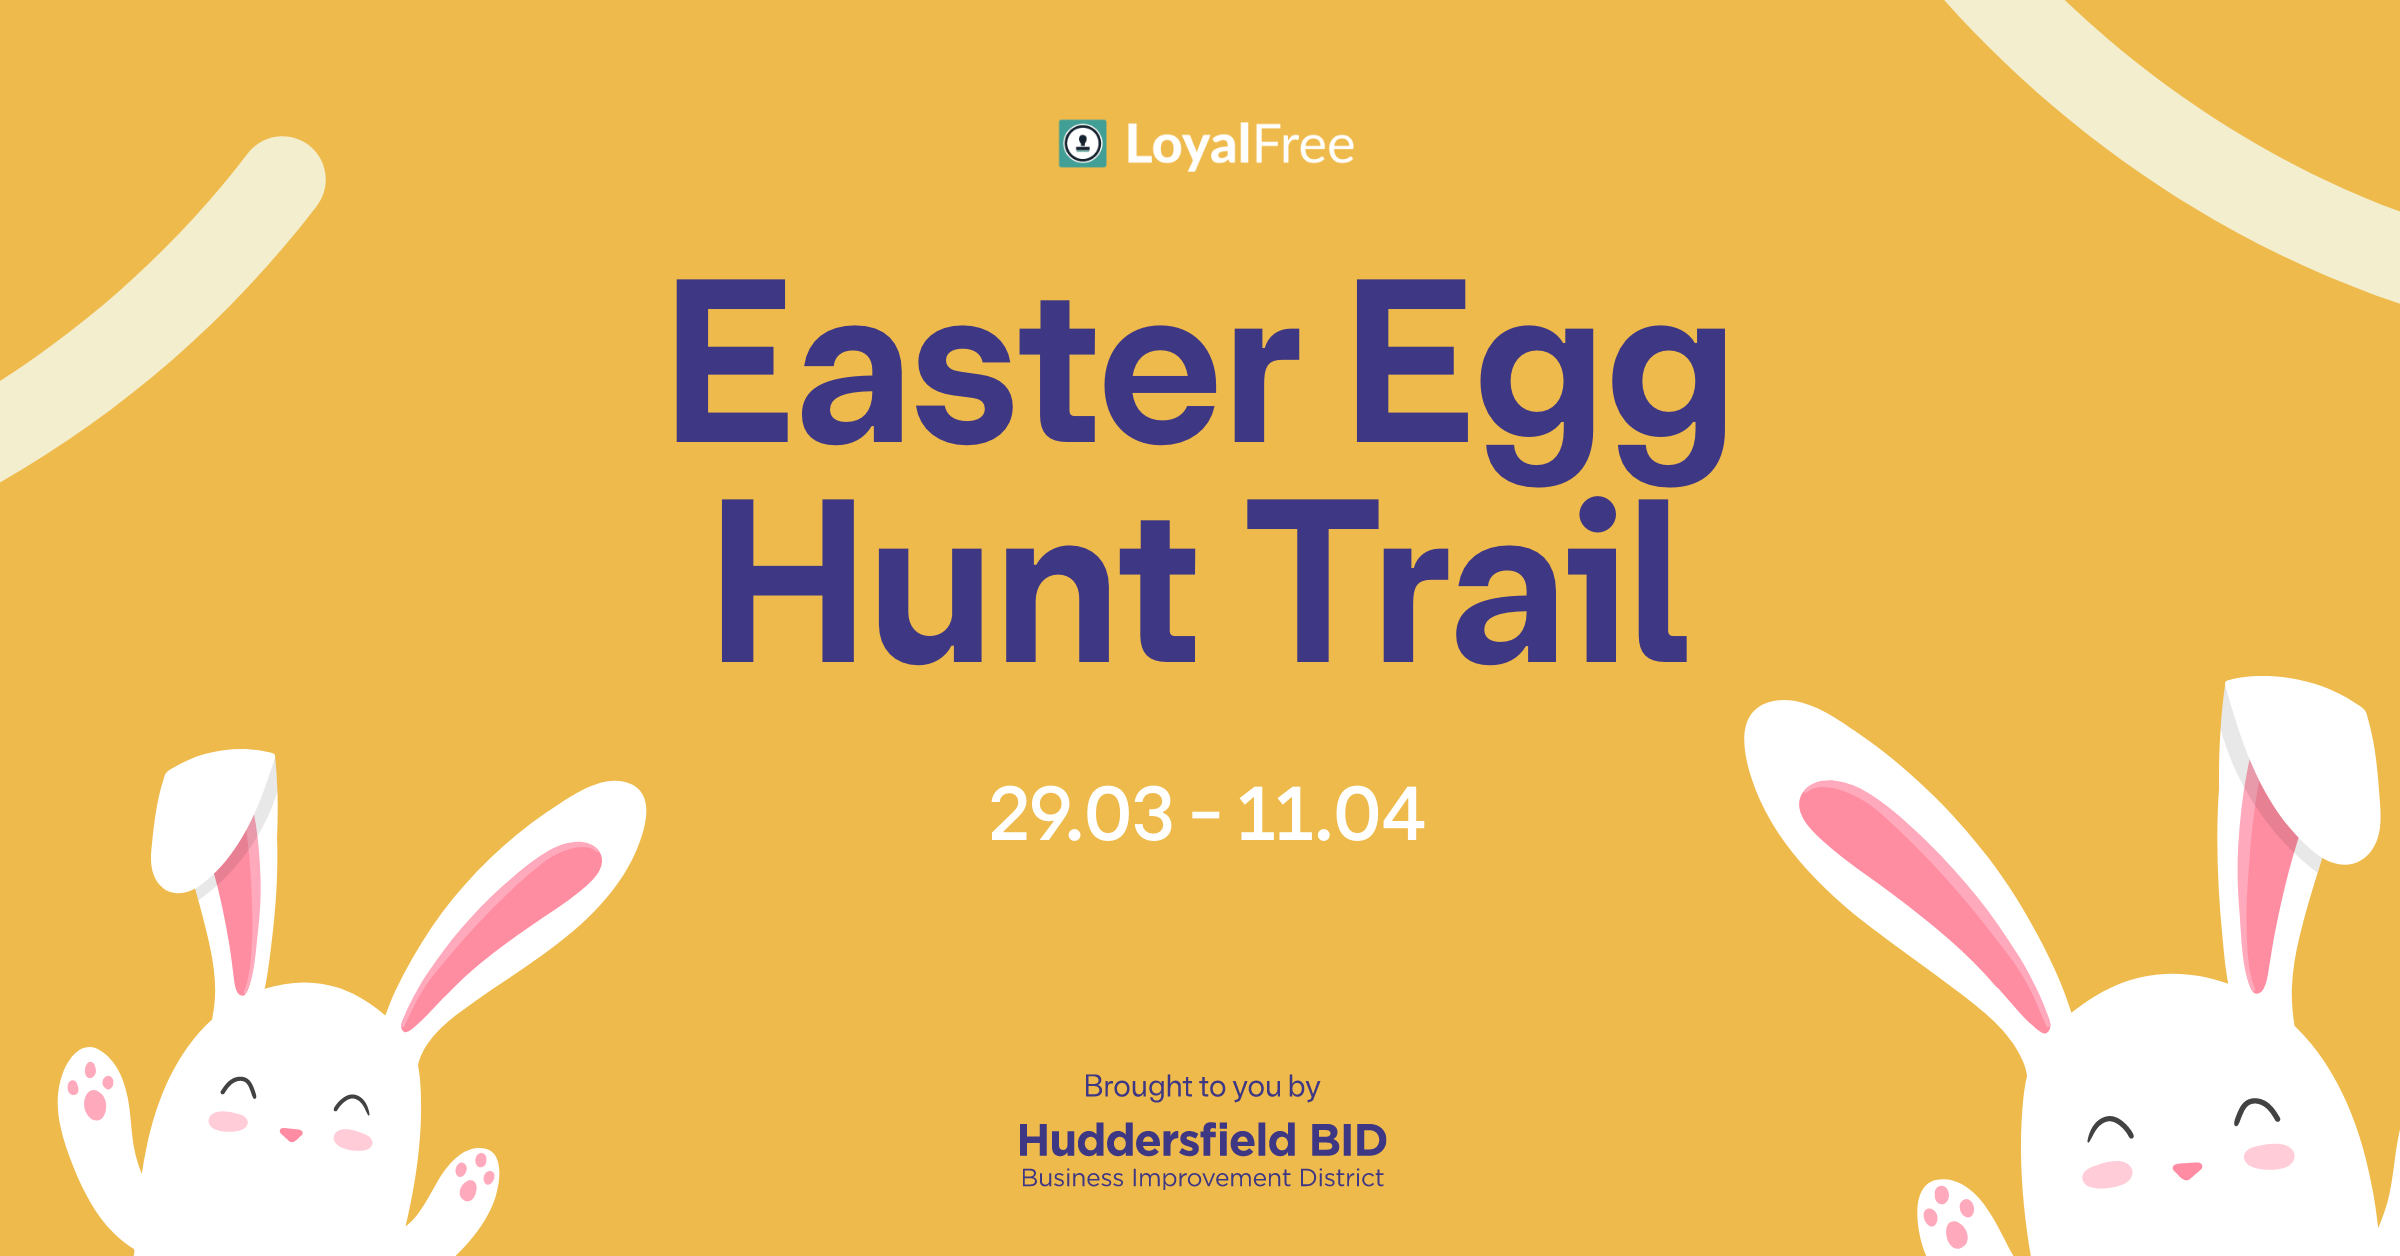 Brand new interactive Easter egg hunt set to launch next week in Huddersfield